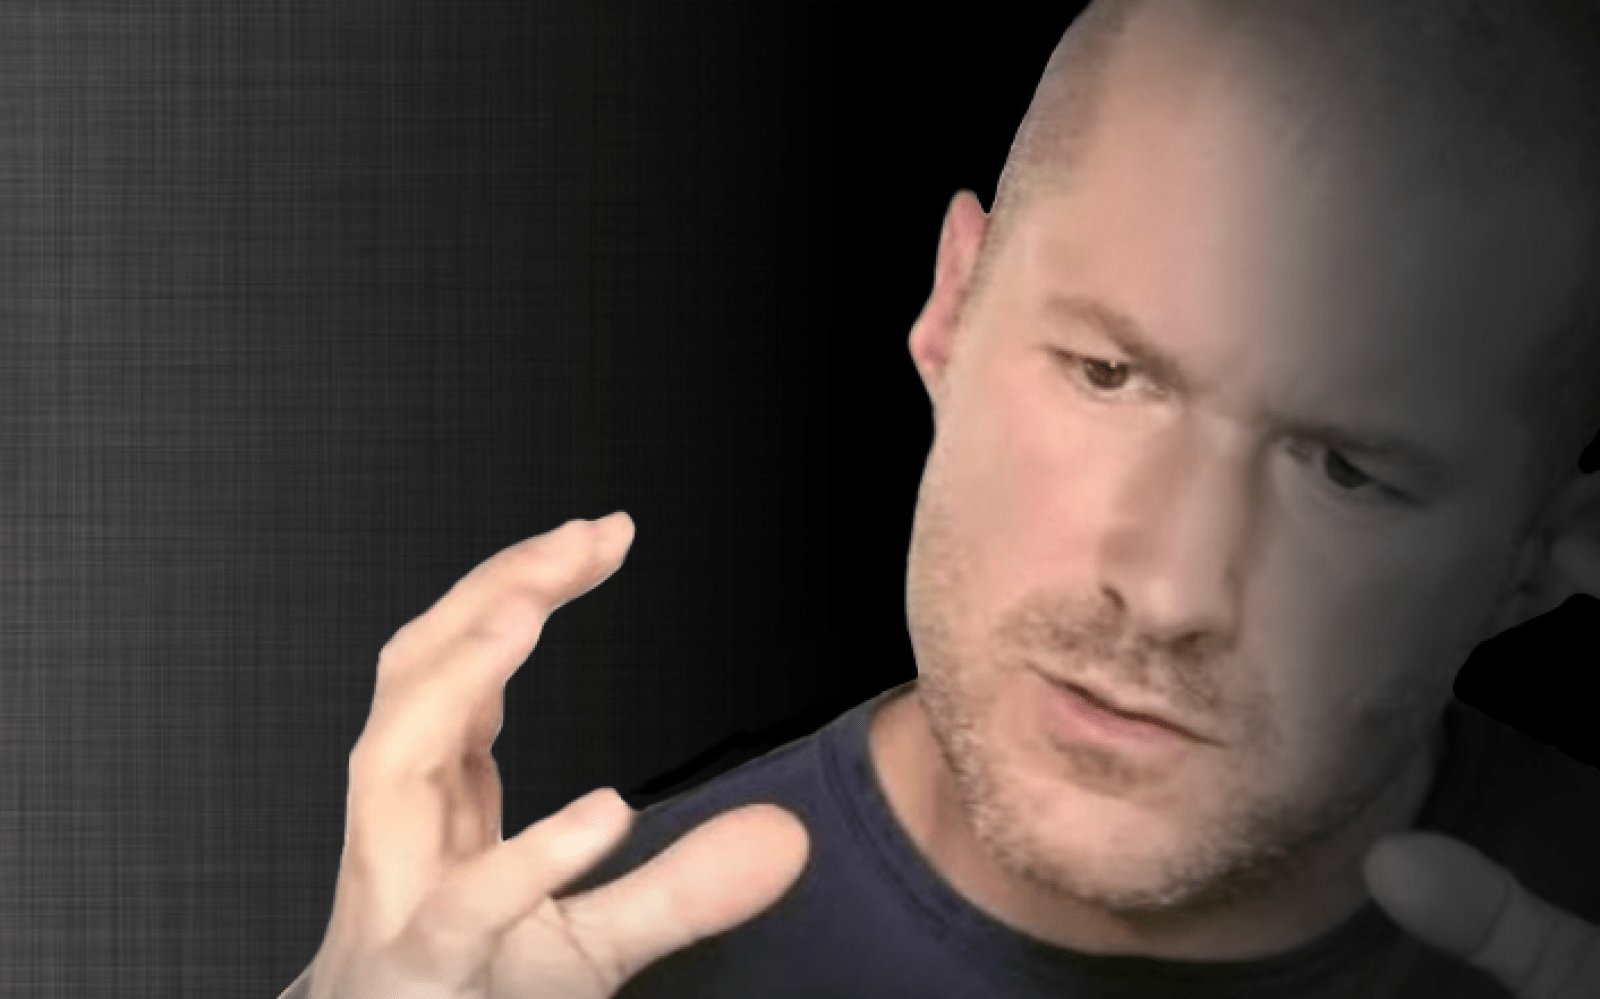 Jony Ive shakes up Apple's software design group, iPhone interface creator Greg Christie departing